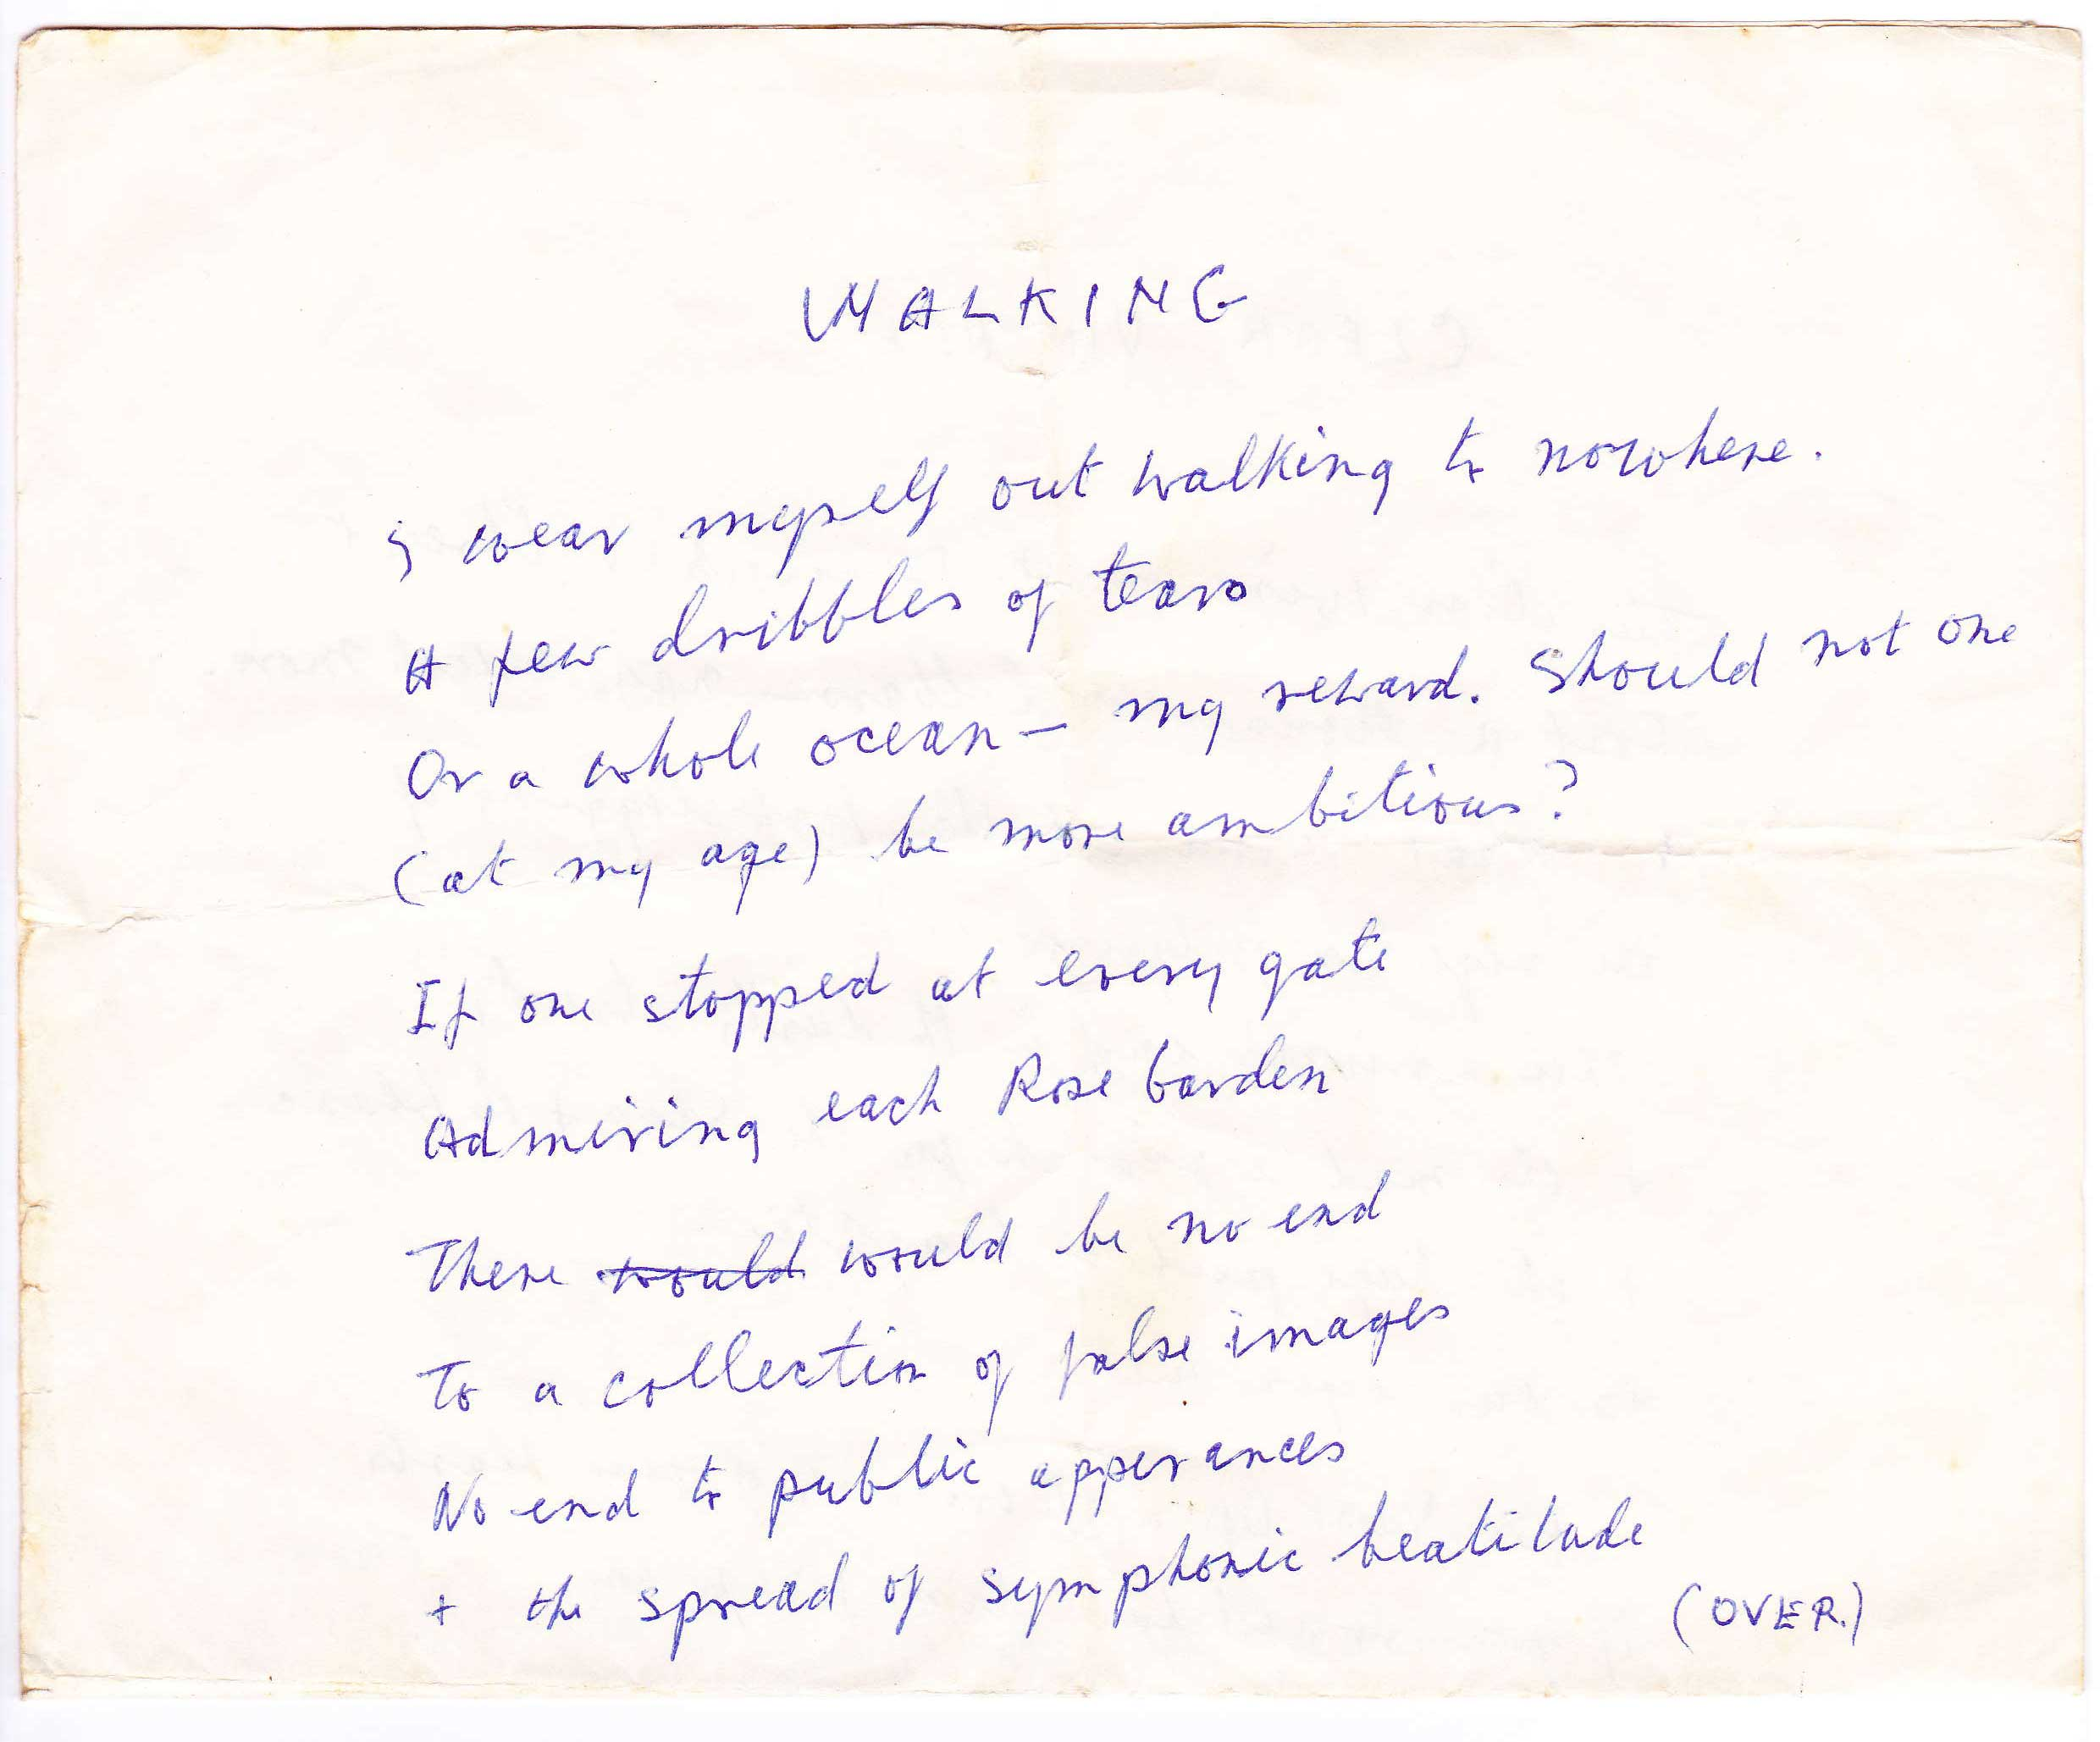 Walking - An unpublished poem by Francis Brabazon